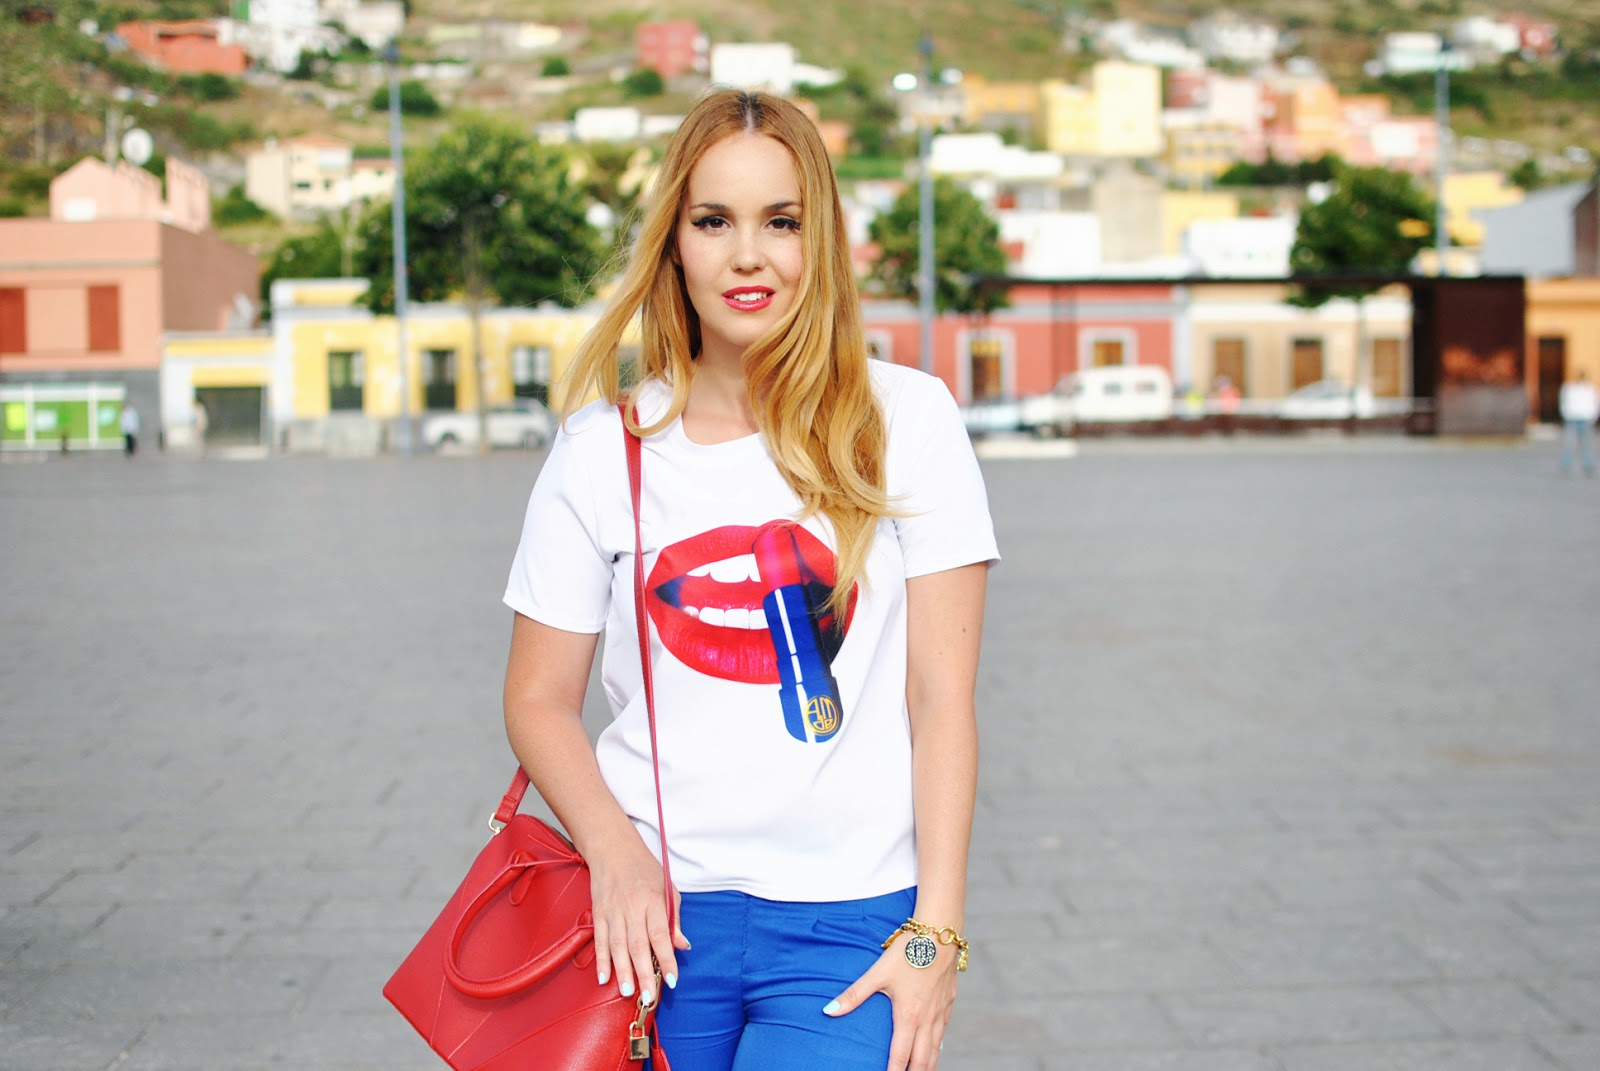 nery hdez, blackfive bloggers, yrb fashion, clon zara , lips, blonde